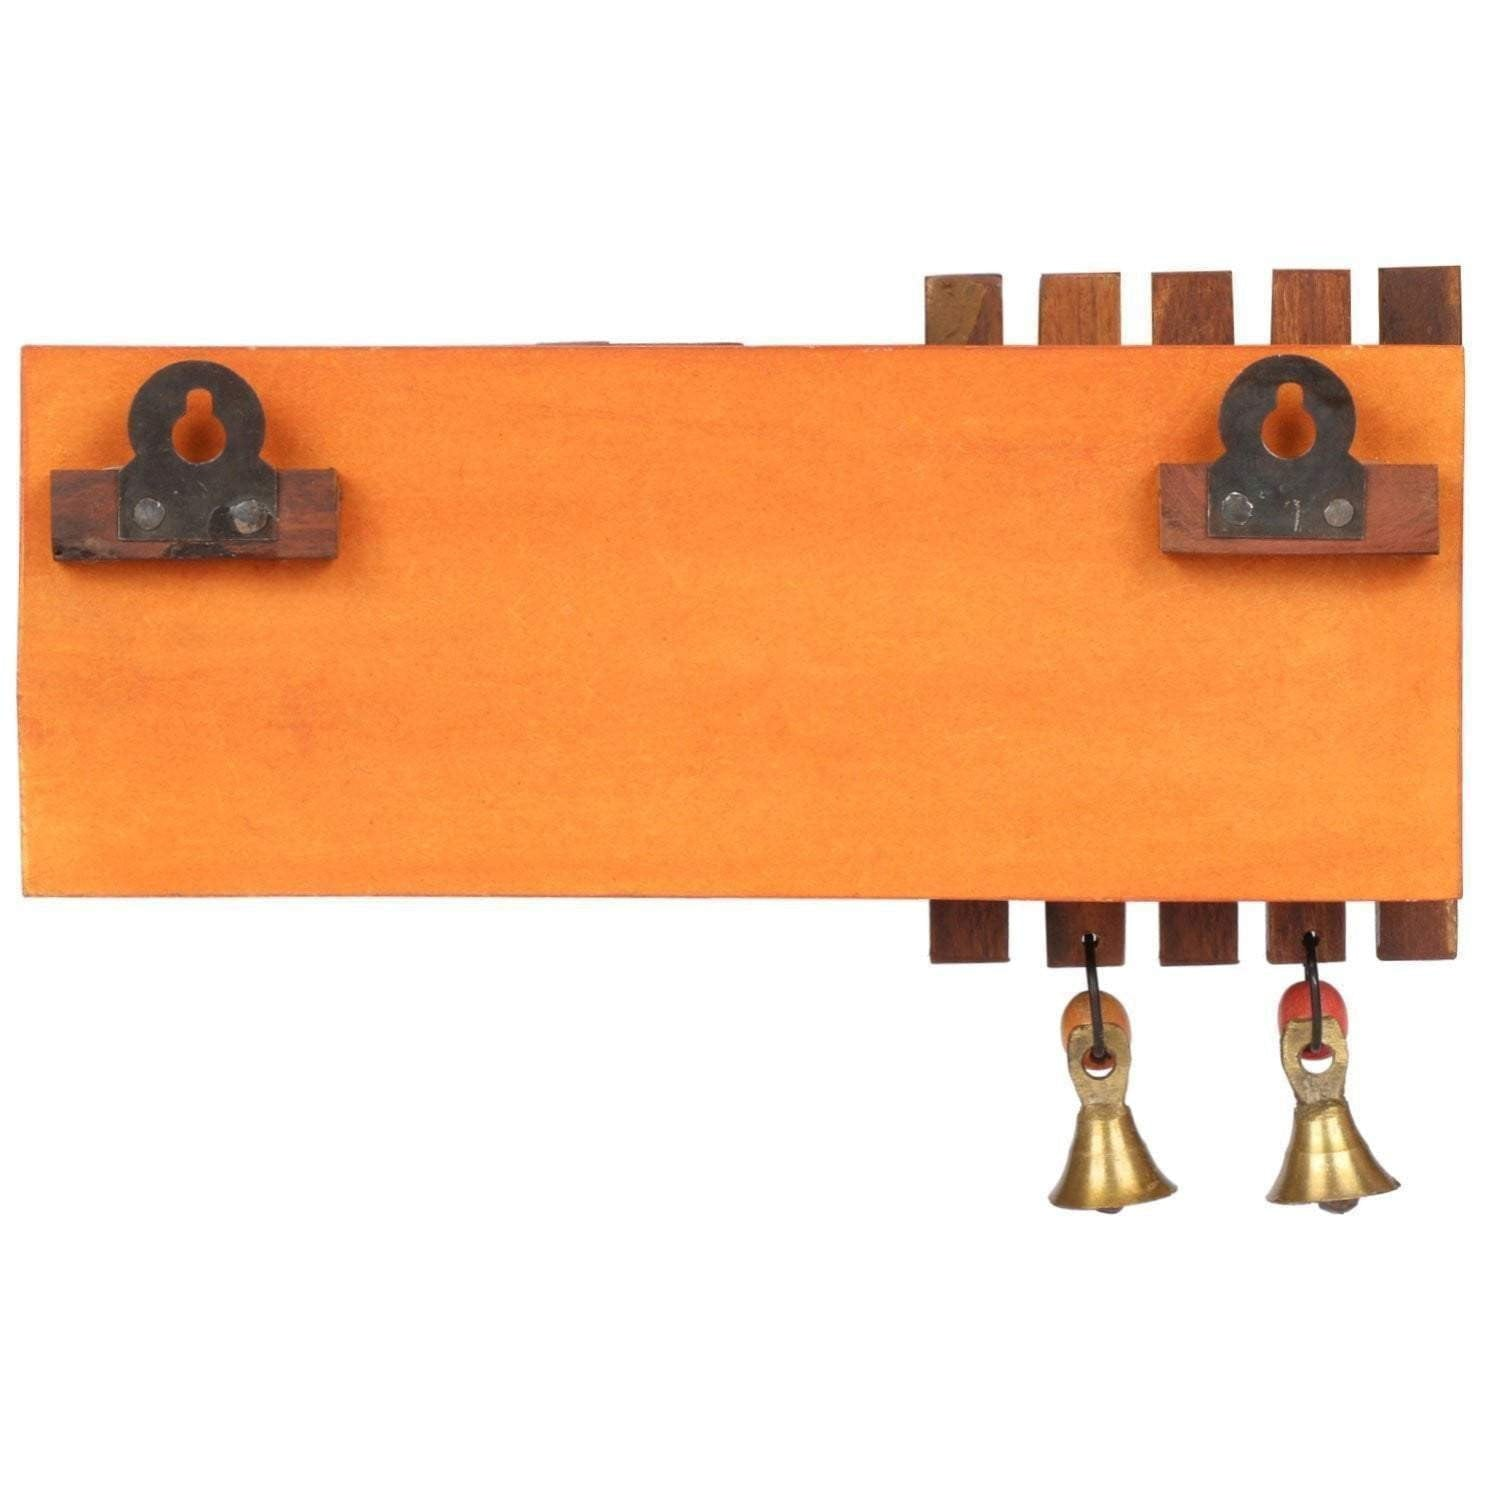 Handicraft Wooden Key Holder For Wall With Warli Art